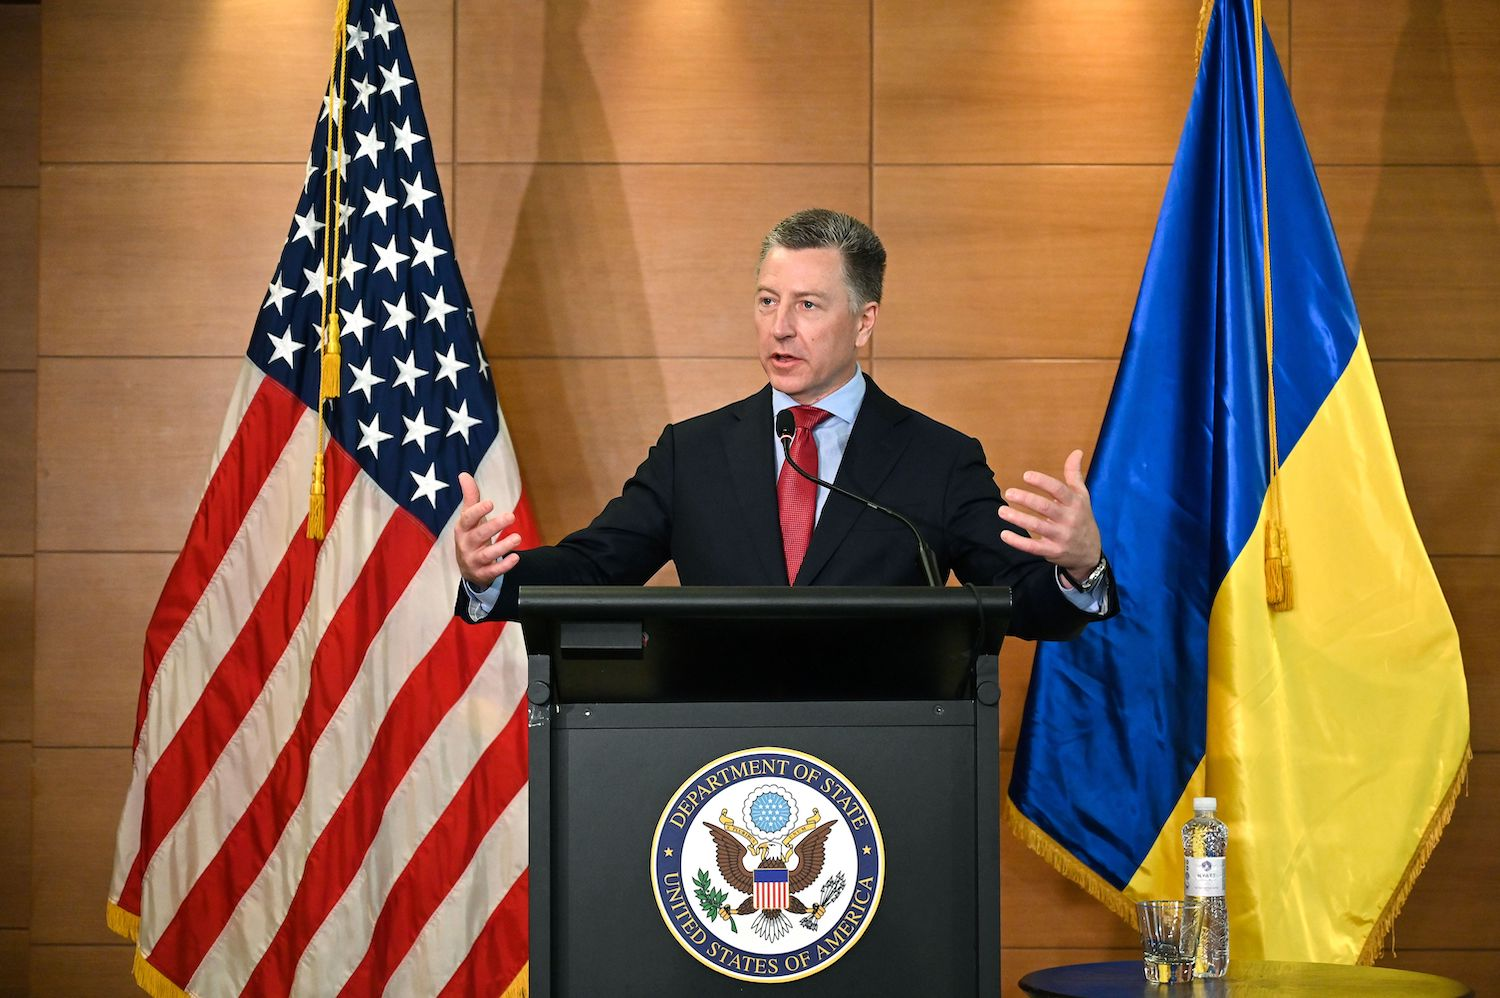 State Department Expected to Scrap Post of Special Envoy to Ukraine